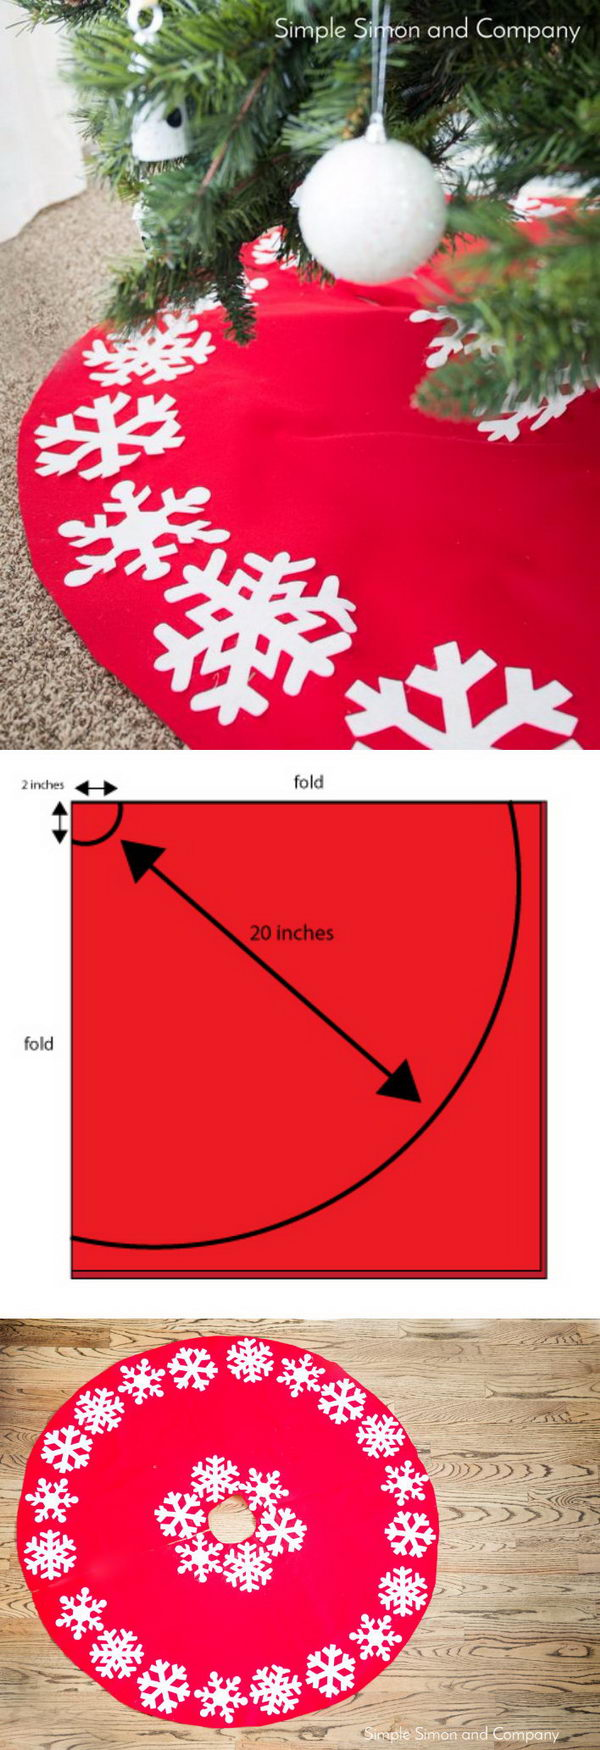 No Sew Snowflake Christmas Tree Skirt Tutorial.